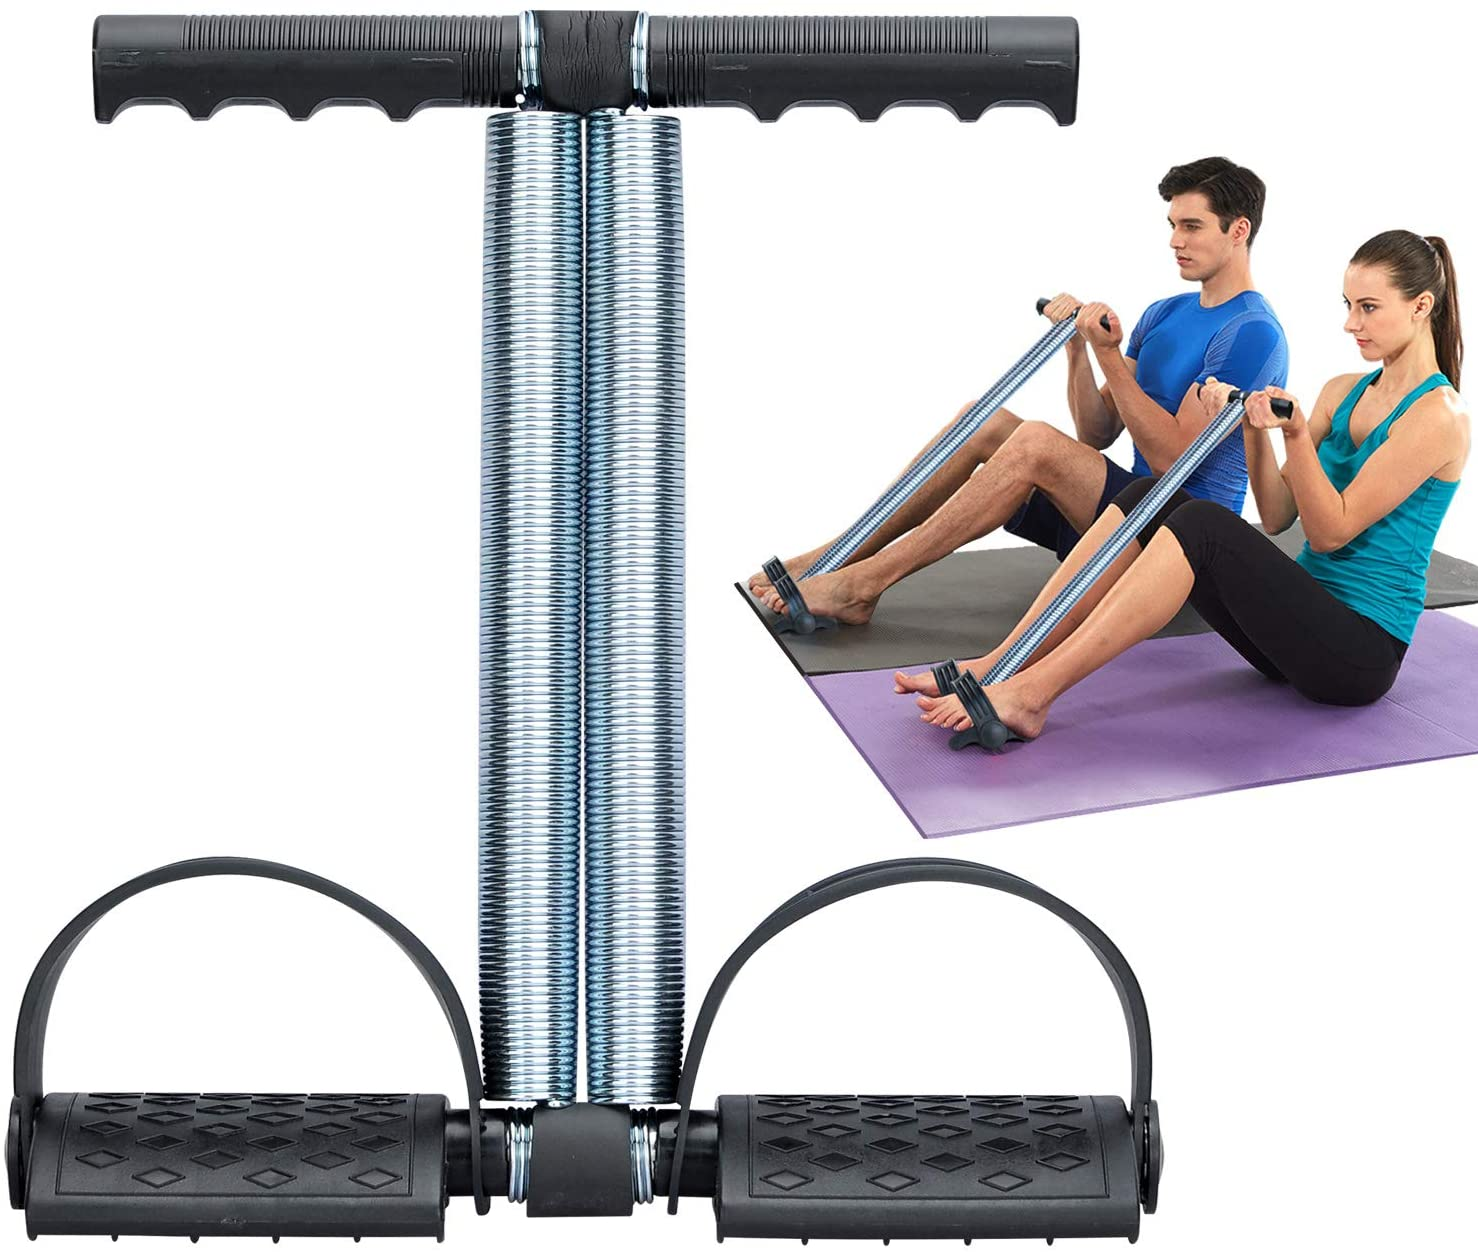 Tummy Trimmer Double Spring Belly Fat Burner Body Fitness Weight loss Home Gym For Men and Women